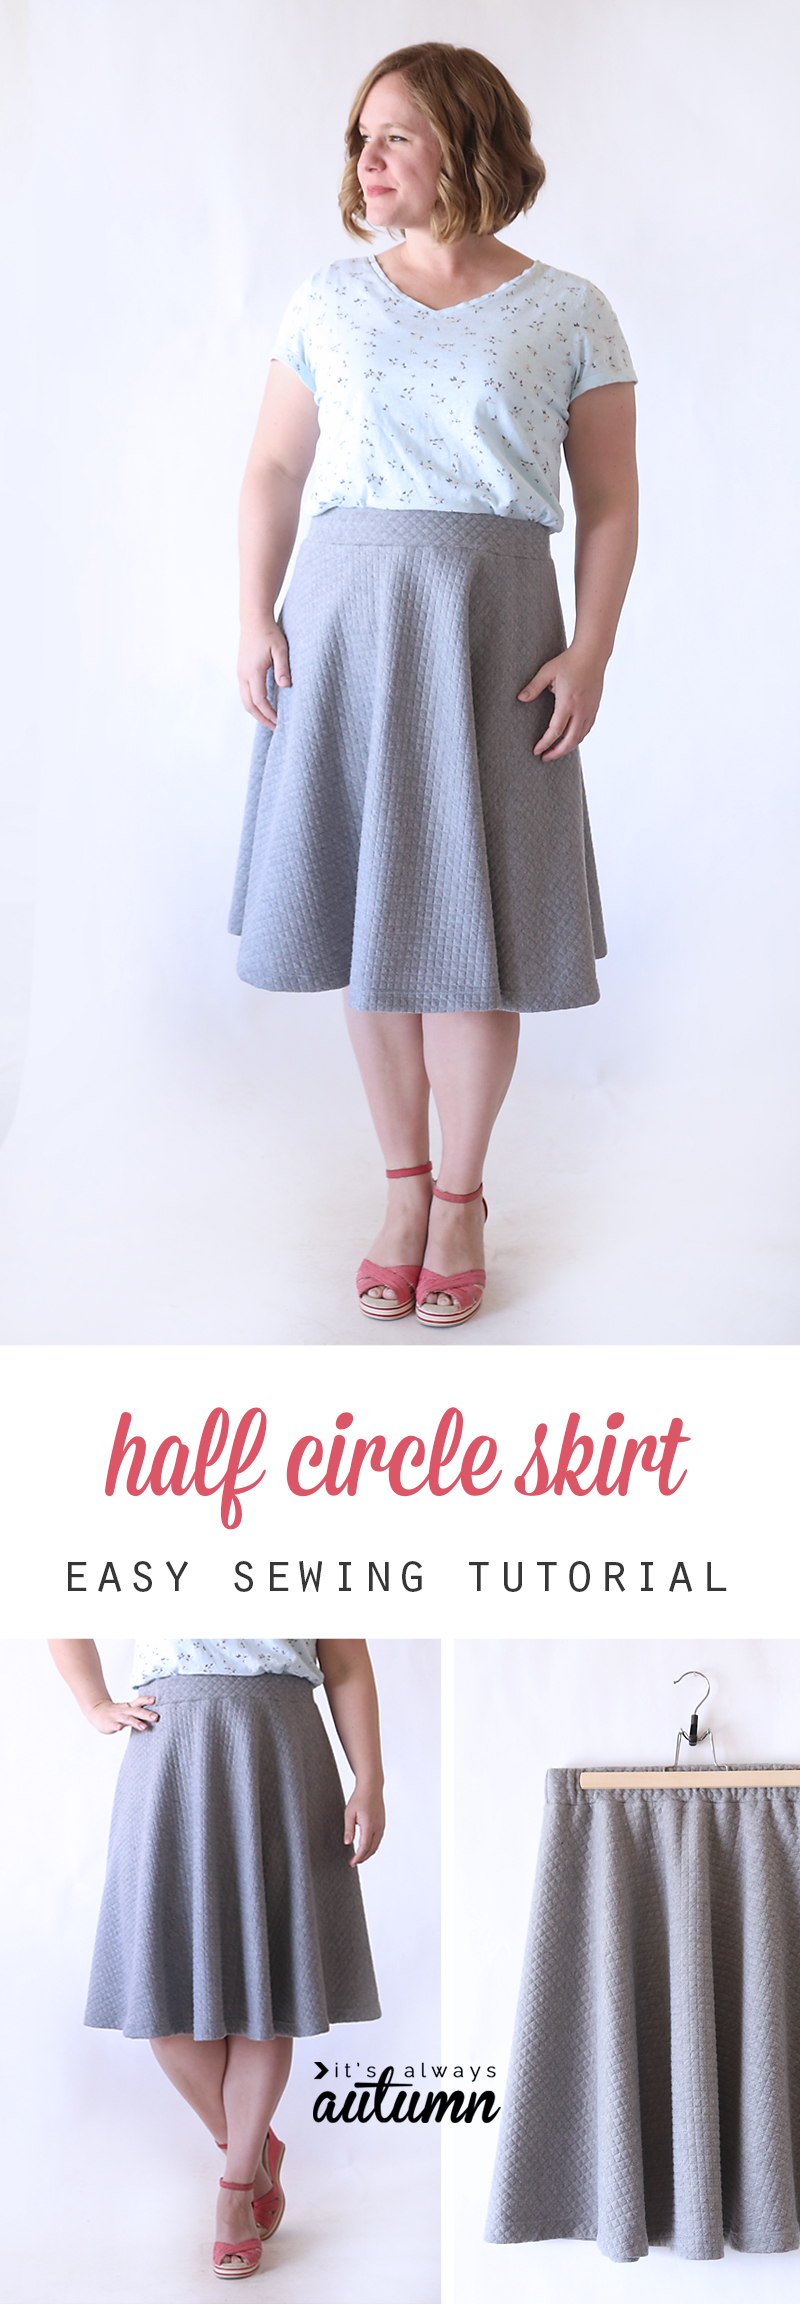 072bcbd73c0 Easy half circle skirt sewing tutorial - make a pattern in any size ...